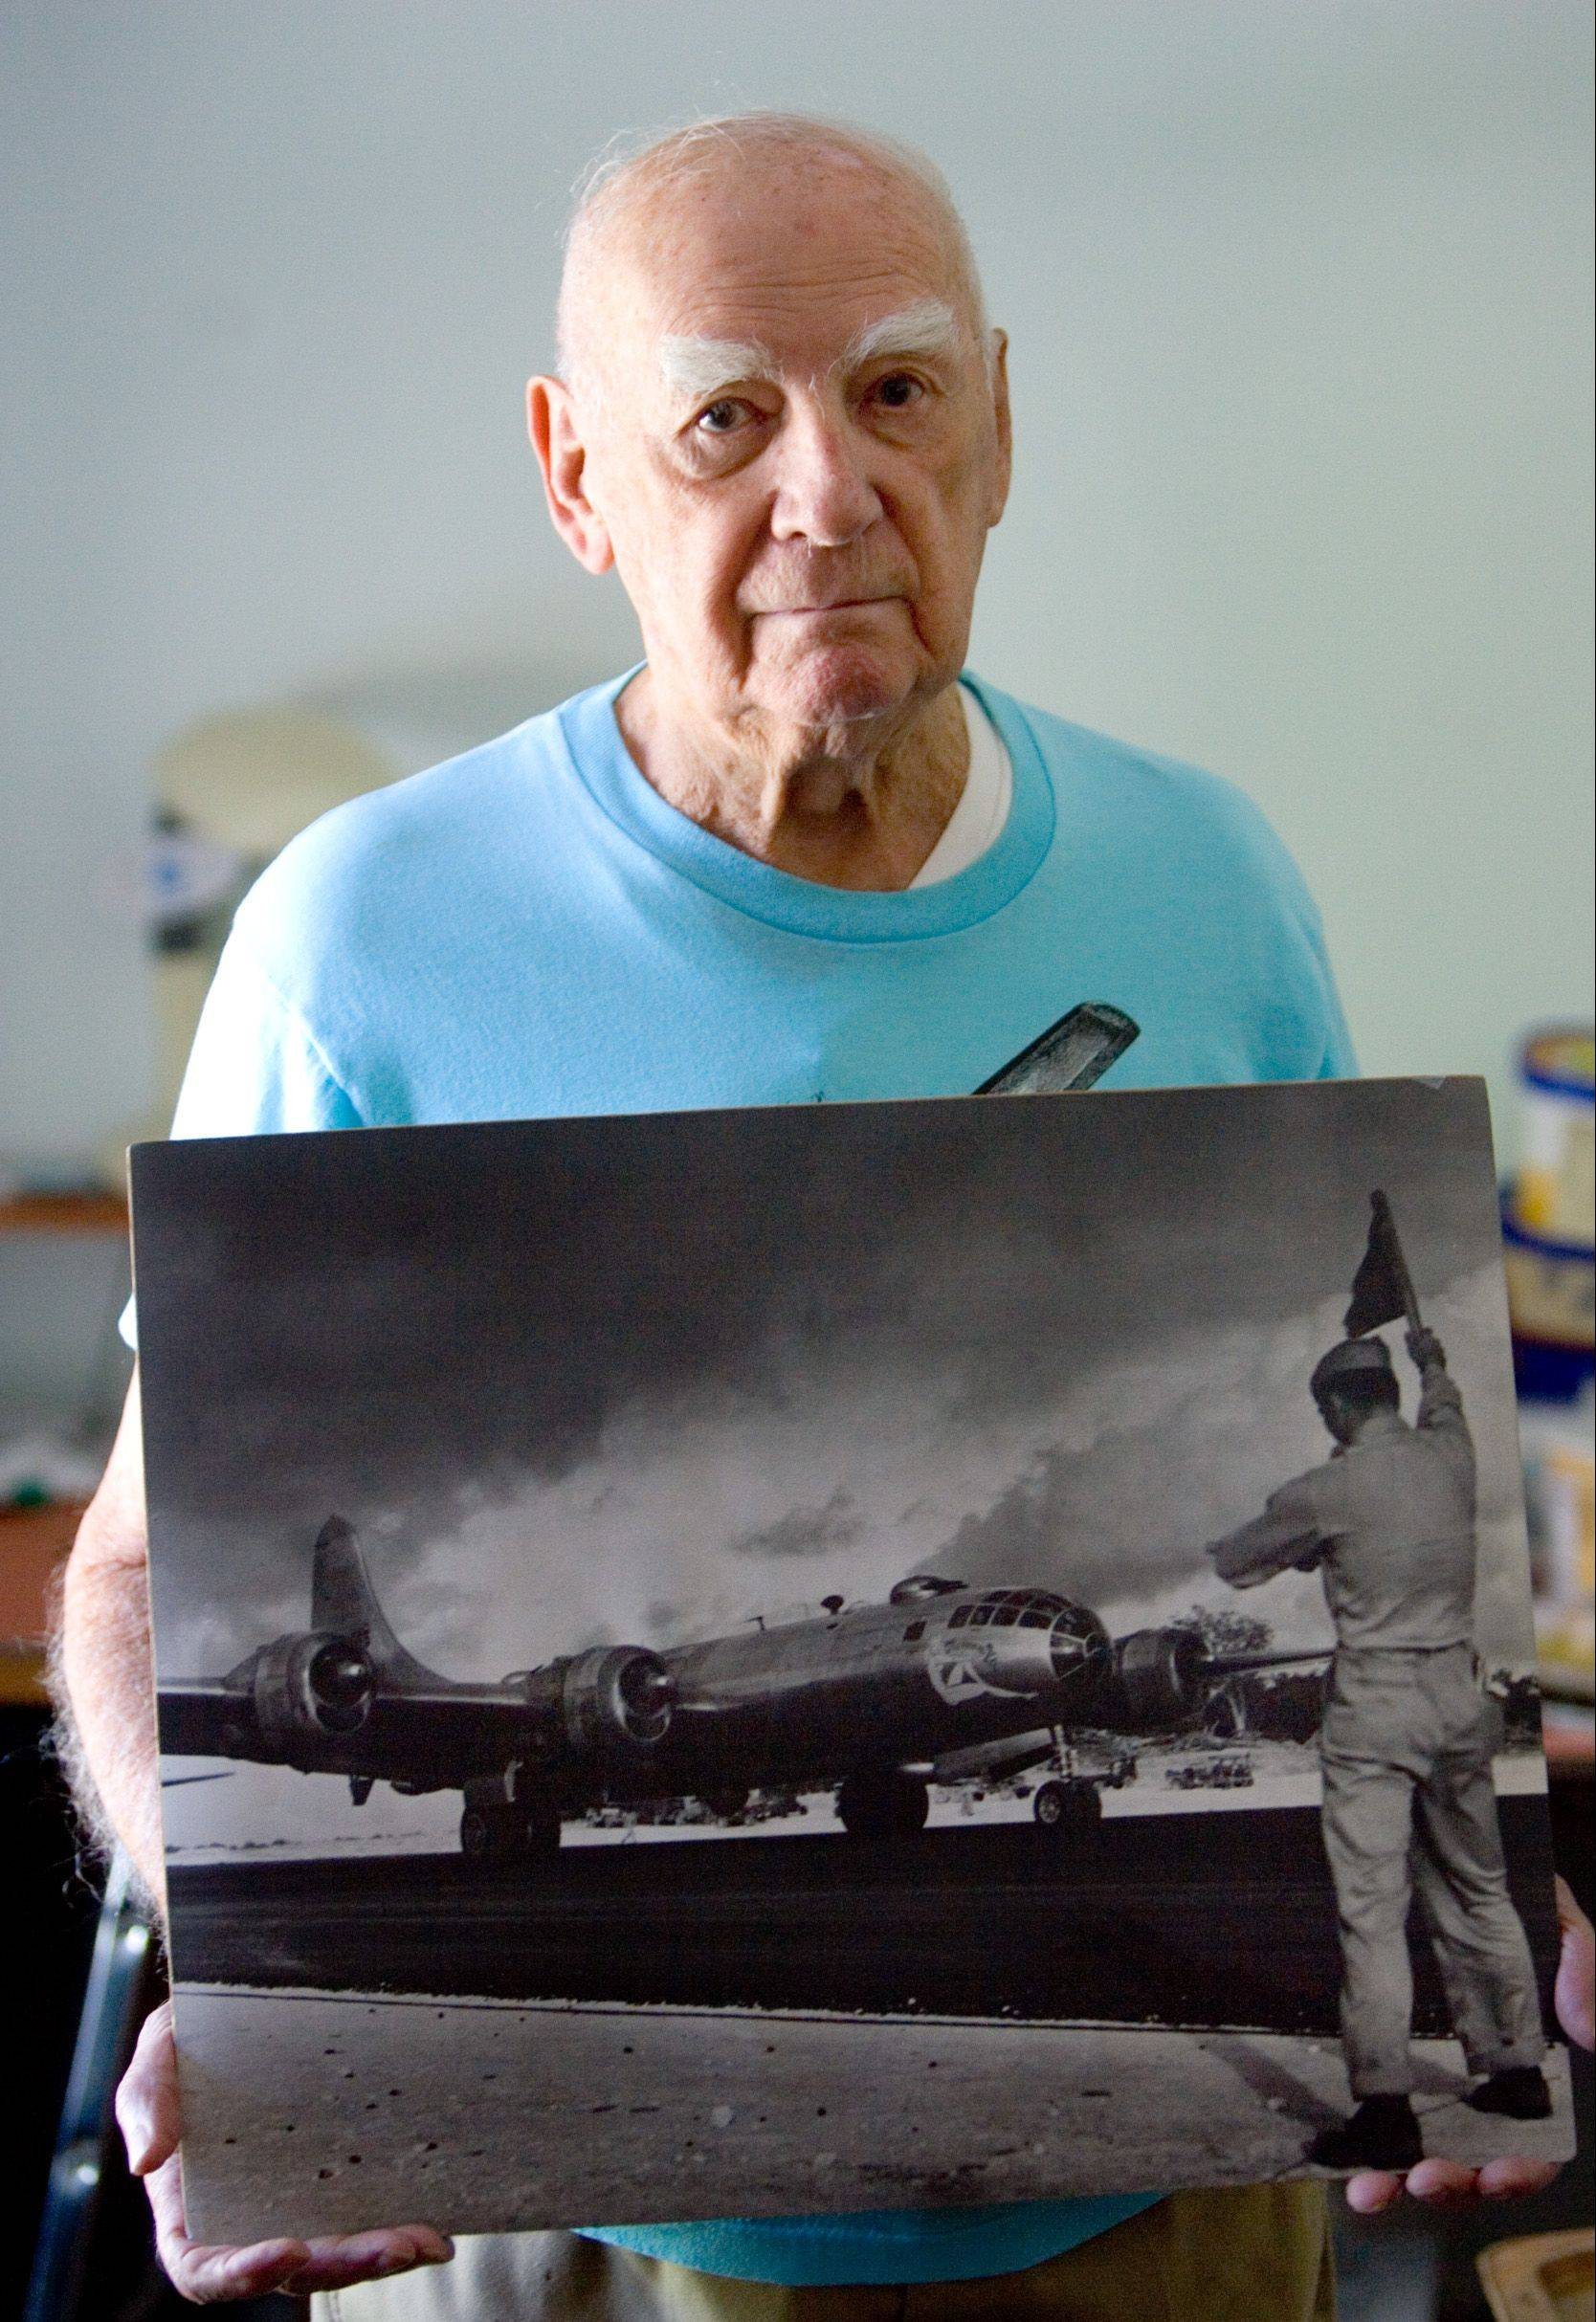 World War II veteran Joe Chovelak holds a photo of the B-29 bomber he flew during the war. Chovelak flew 35 missions as a radio operator in the Pacific Theater.